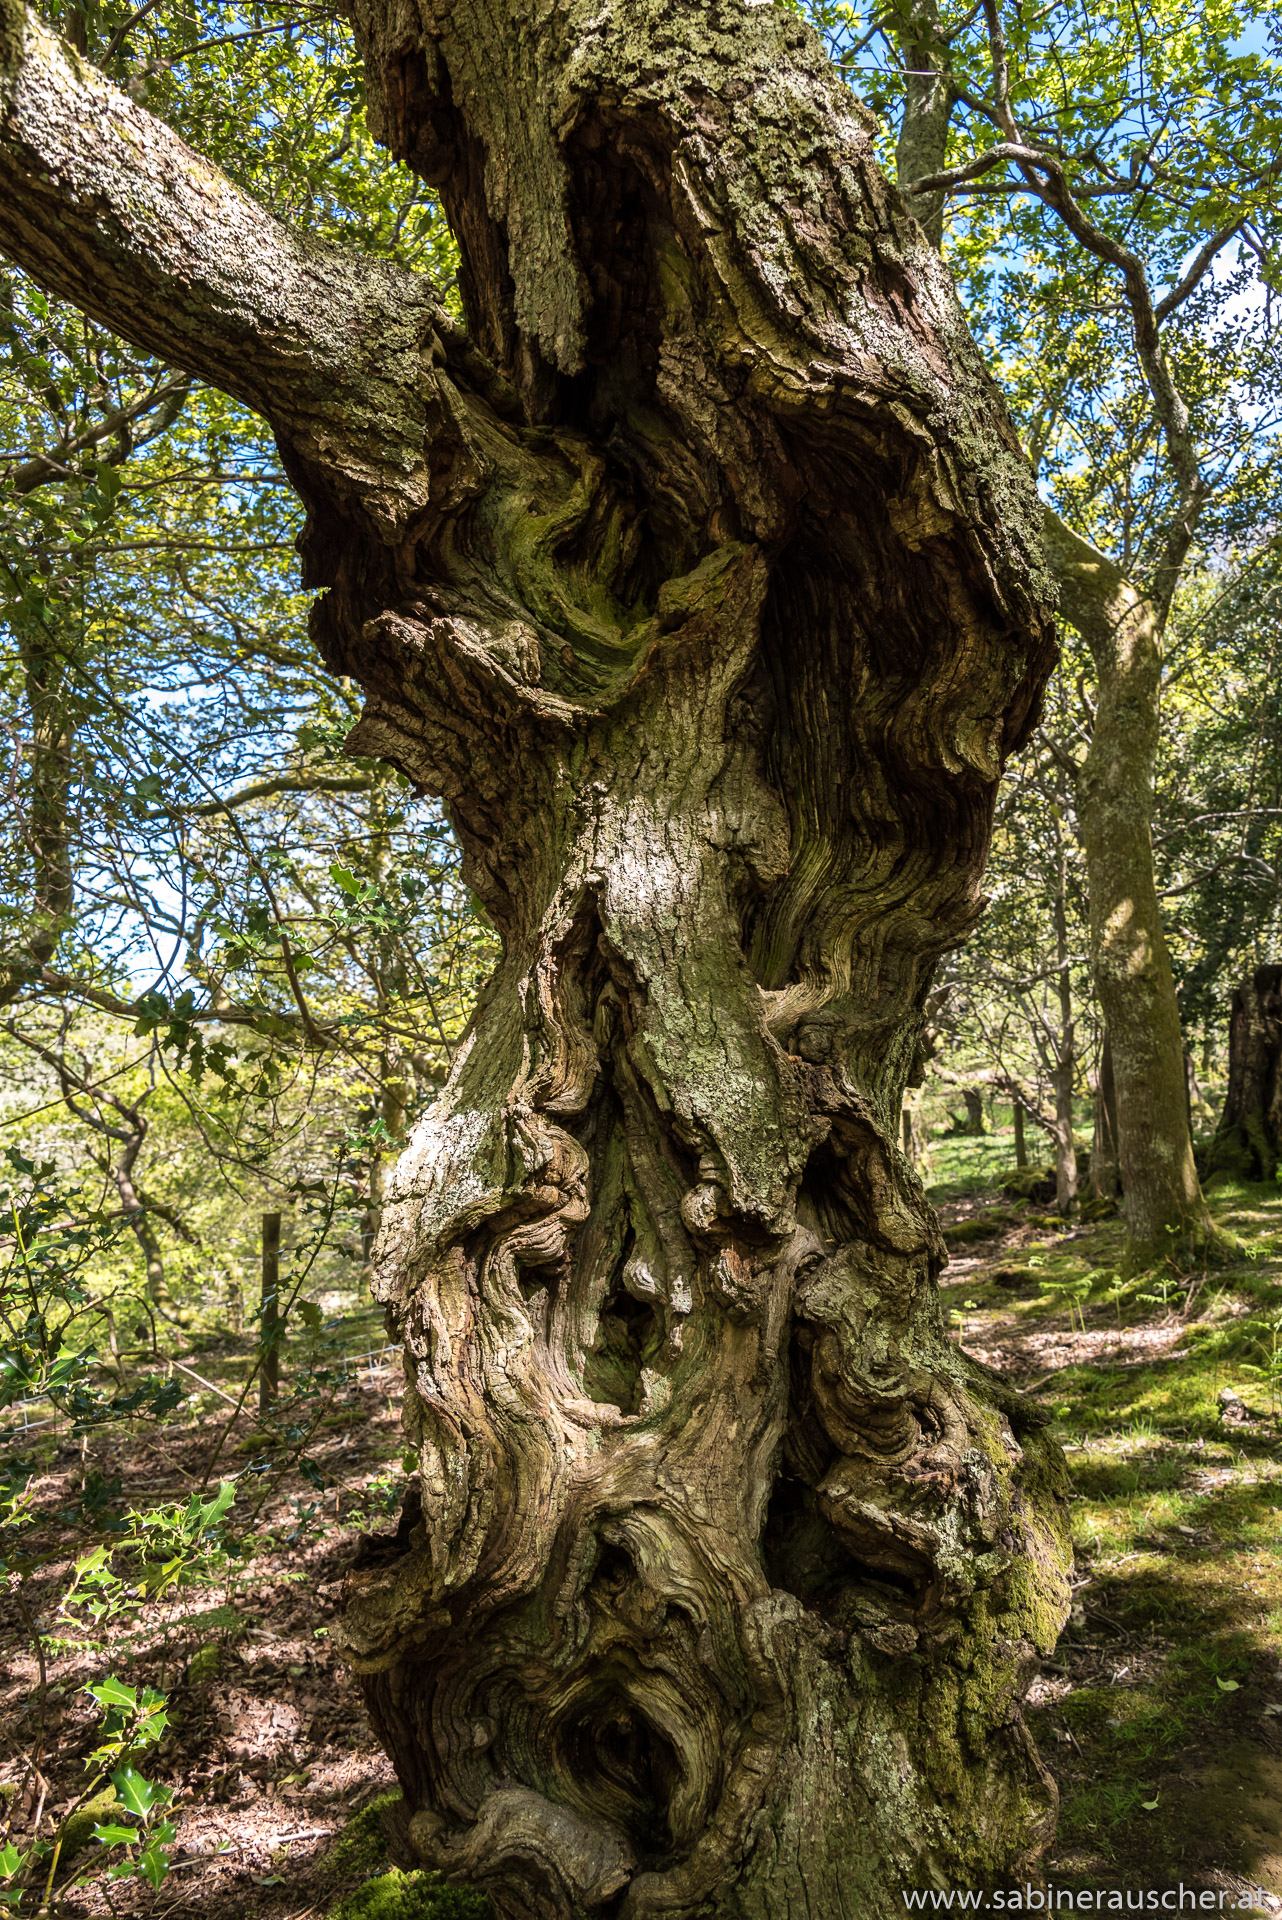 gnarled tree trunk at Dolgoch Falls in Wales | knorriger Baumstamm bei den Dolgoch Falls in Wales